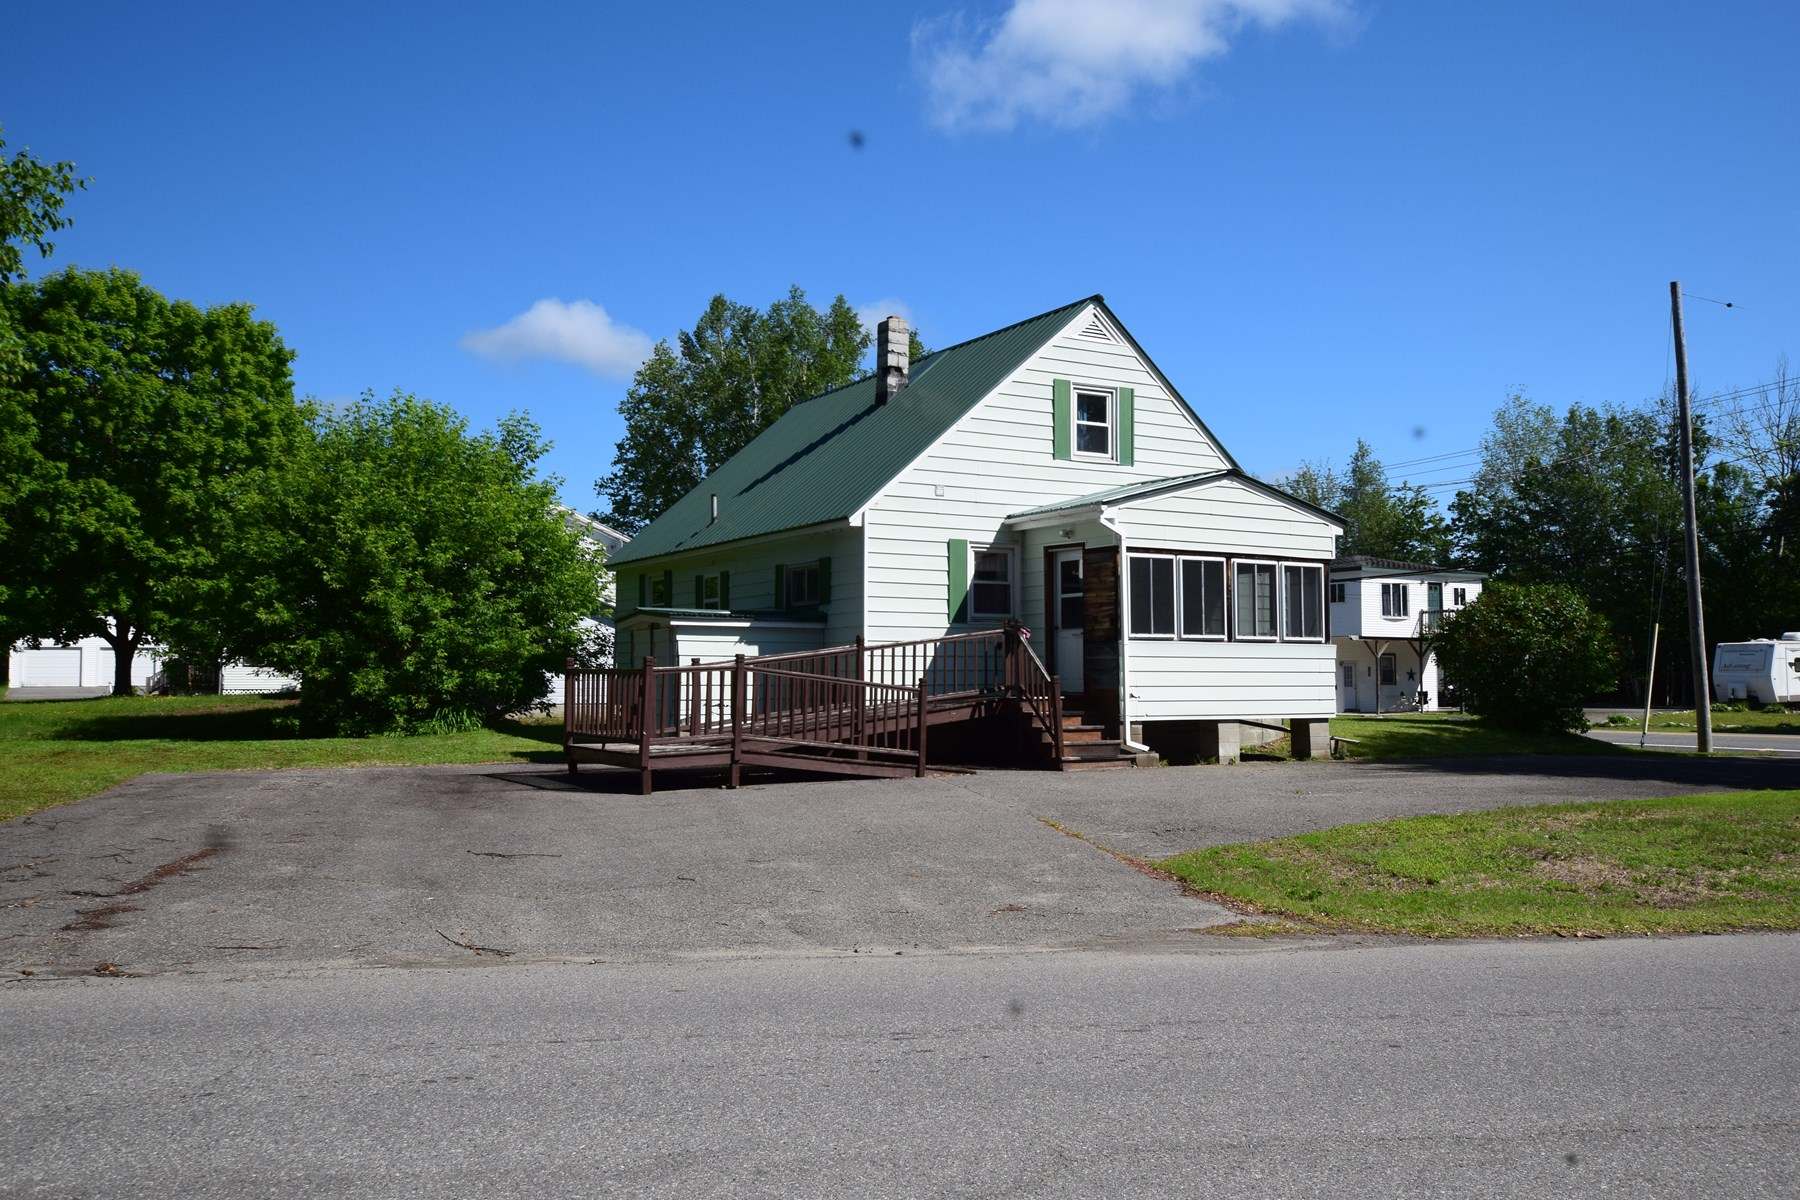 Country Home For Sale in Millinocket | Maine Real Estate